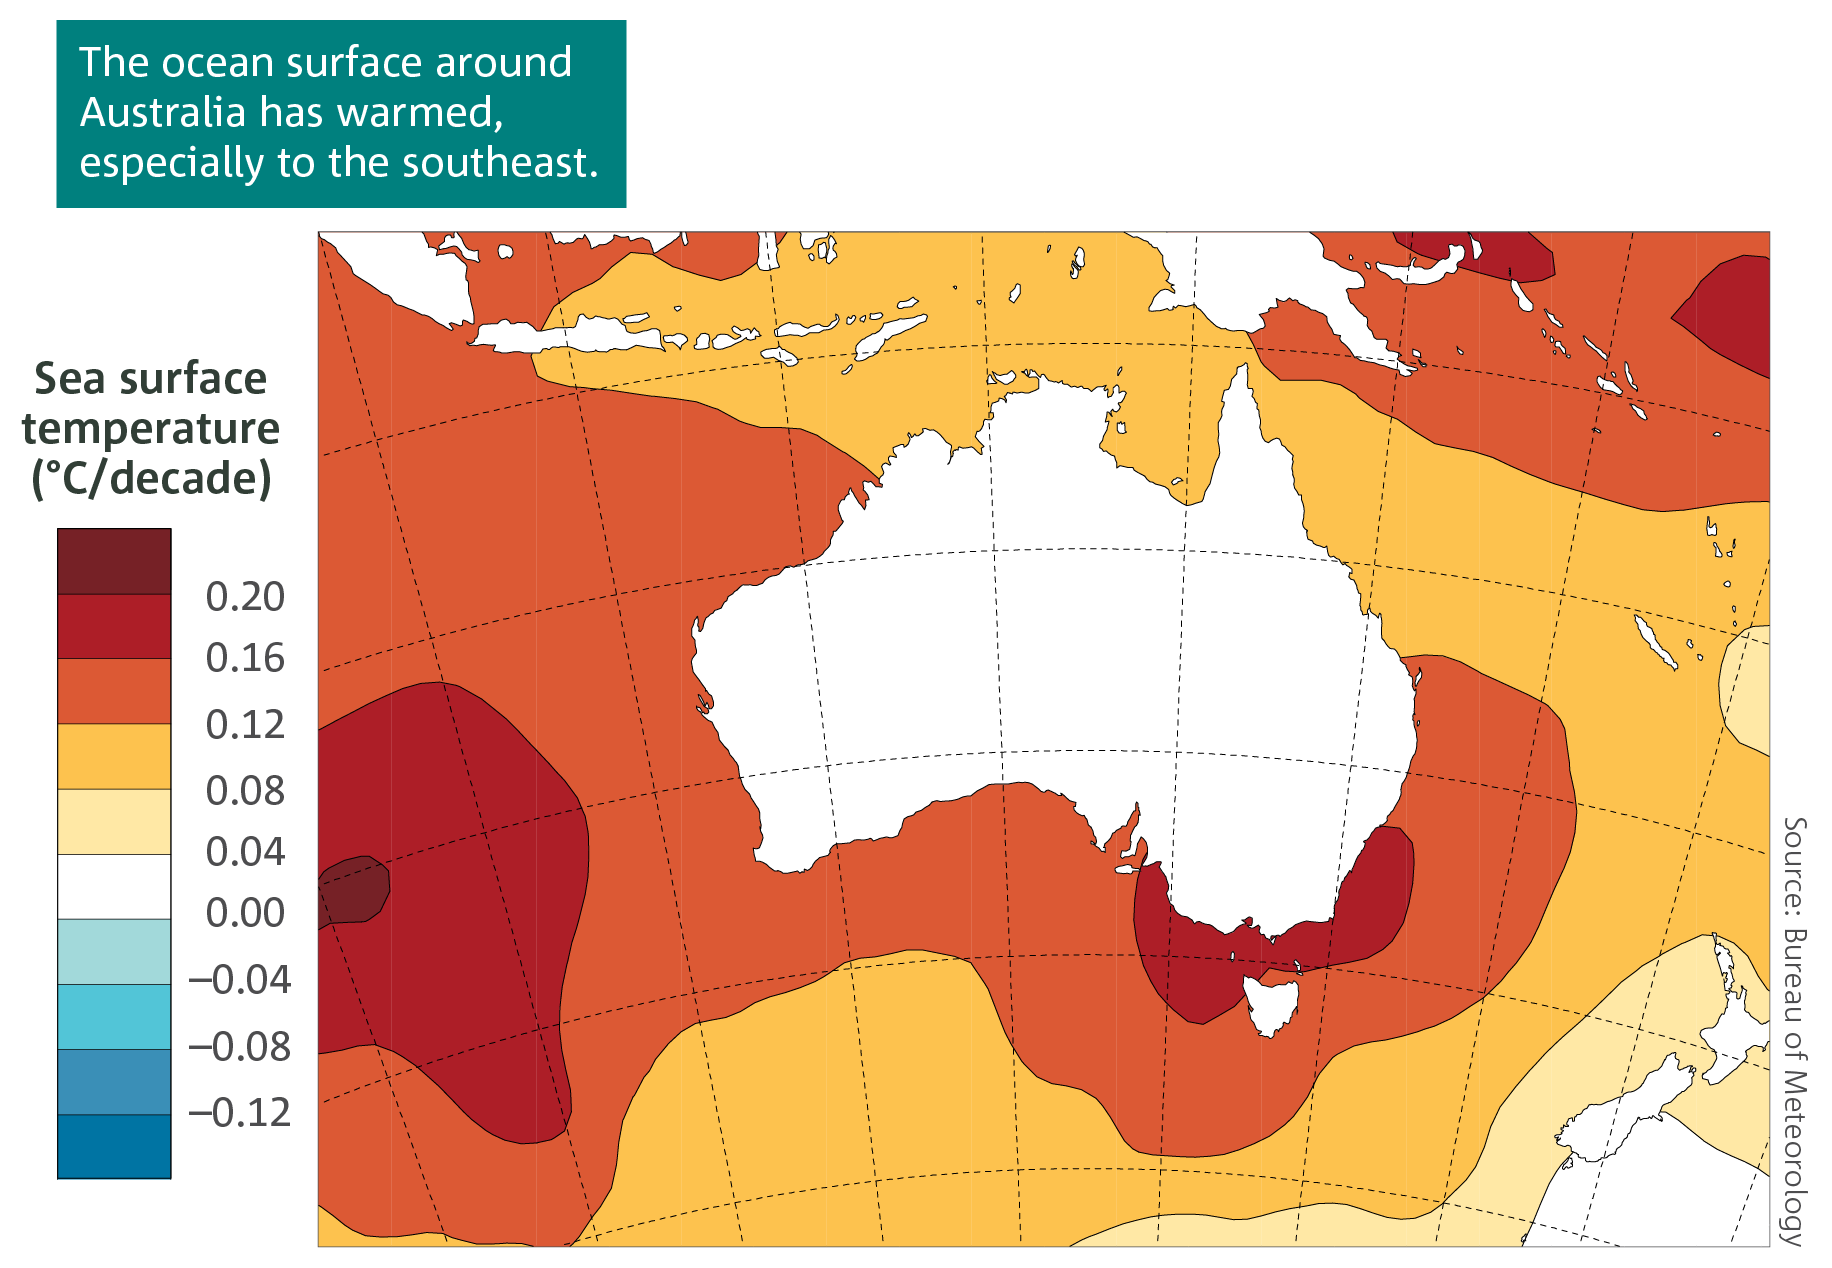 A map showing trends in sea surface temperatures in the Australian region from 1950 to 2017.